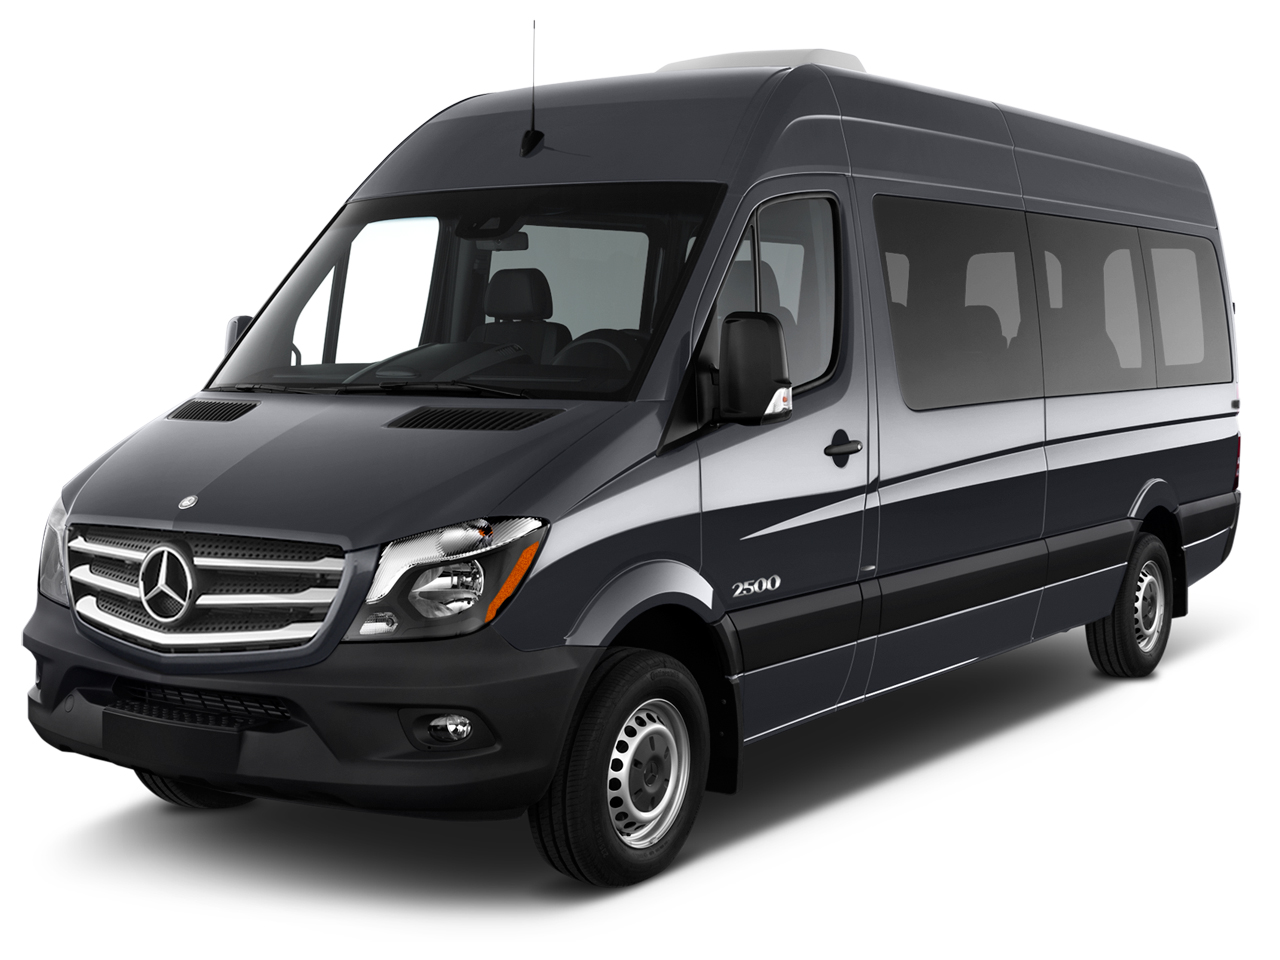 2017 mercedes benz sprinter passenger van review ratings for Mercedes benz sprinter conversion van for sale